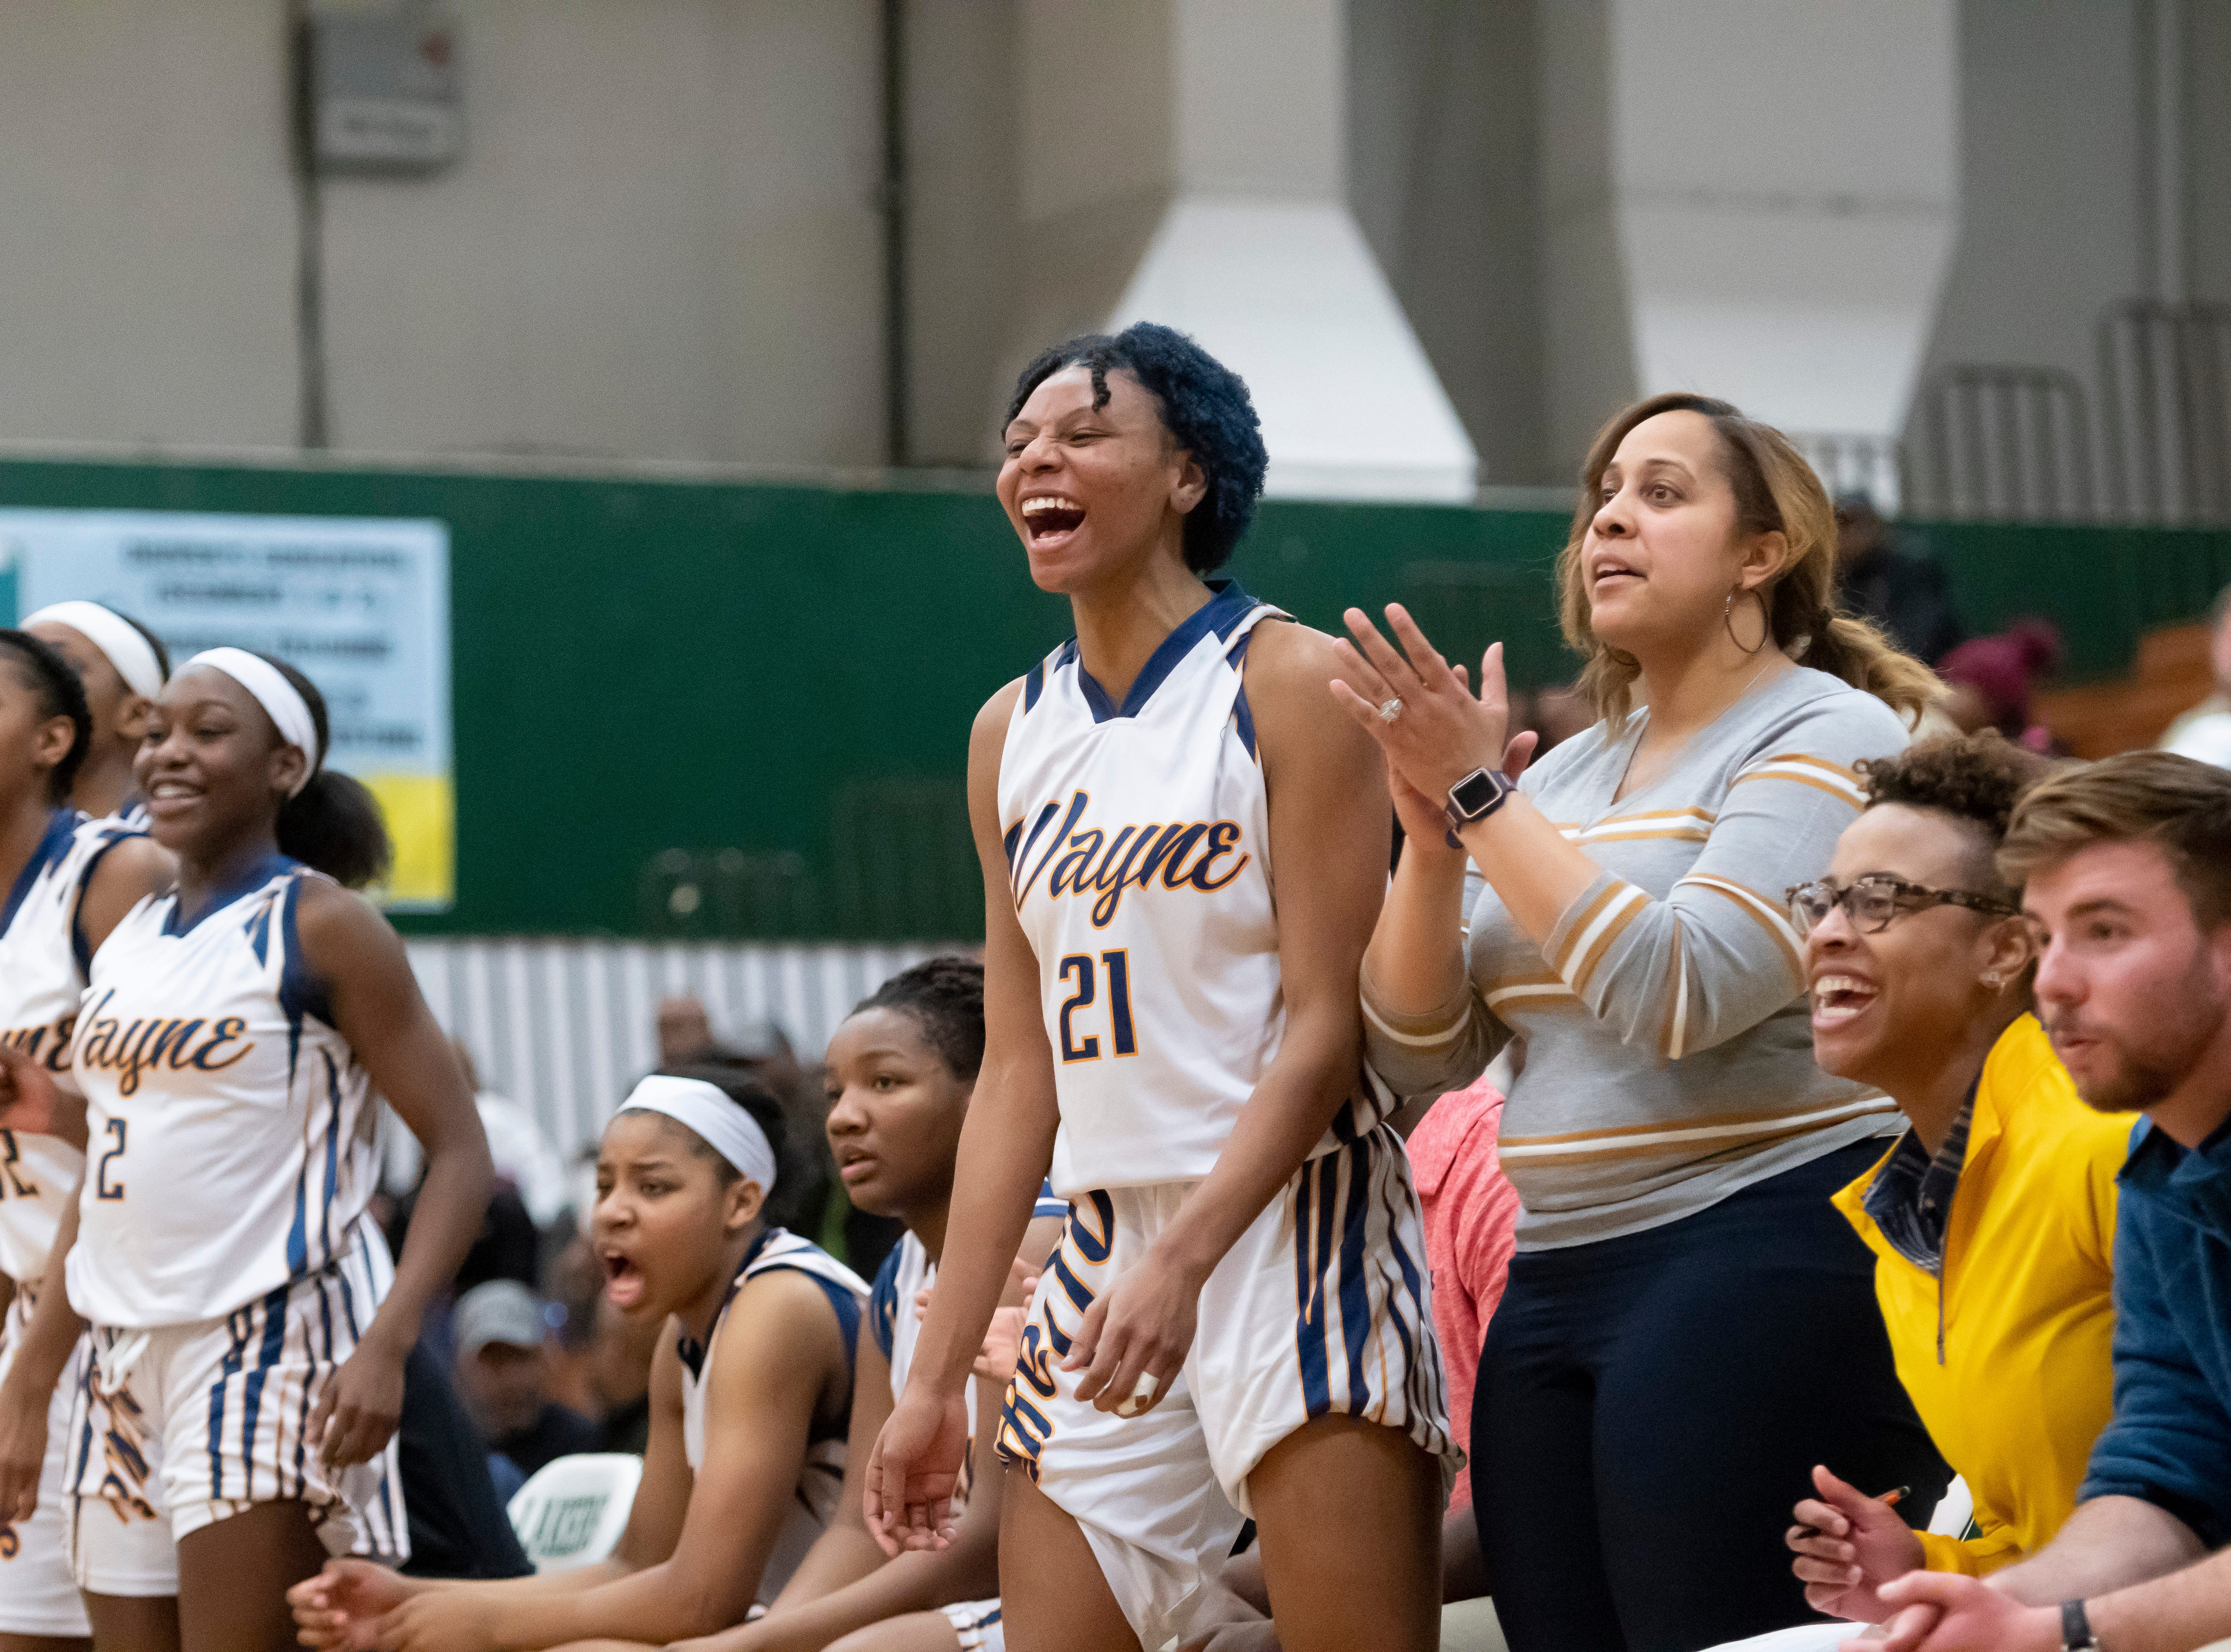 Wayne Memorial guard Sammiyah Hoskin, center, and the rest of the team celebrate after scoring in the second half.